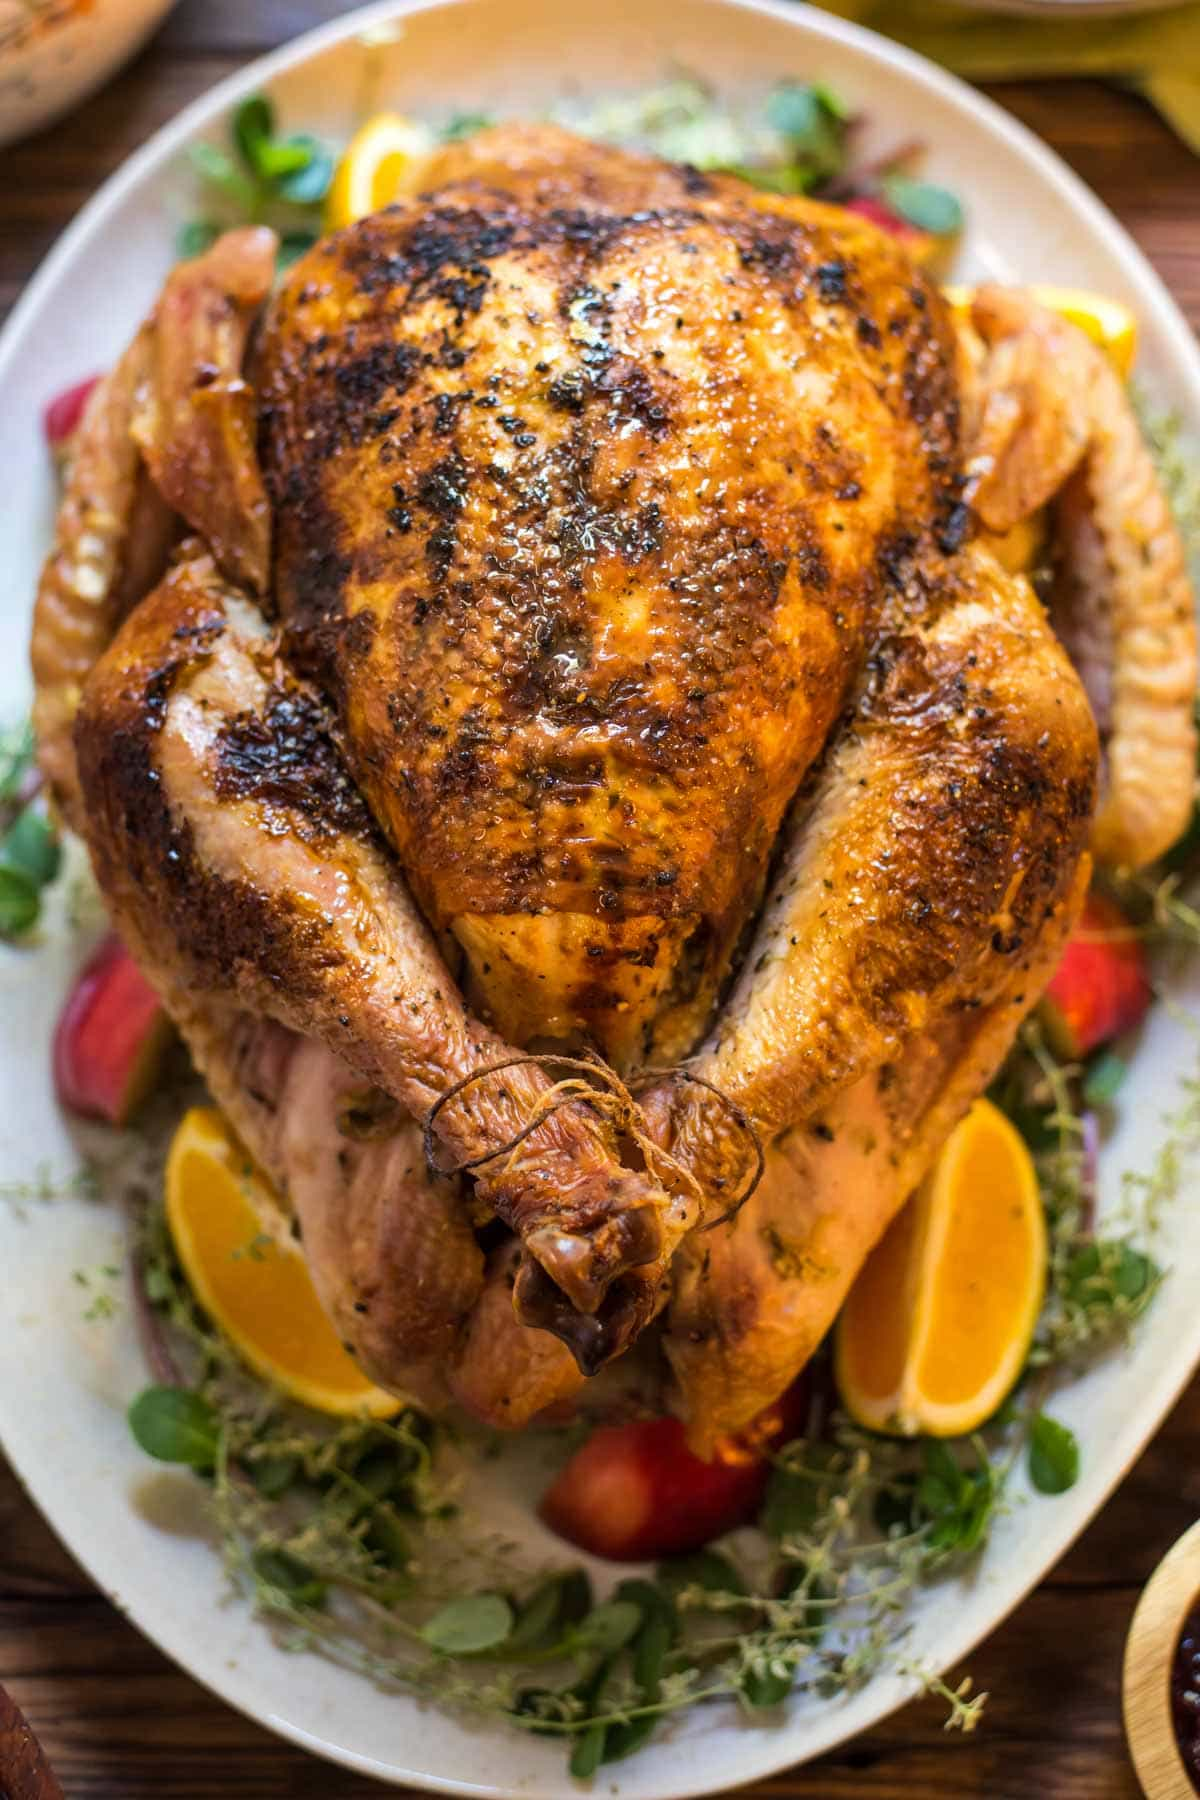 Citrus, herbs, butter and cider all come together to make this Braised Apple Cider Turkey juicy and tender!